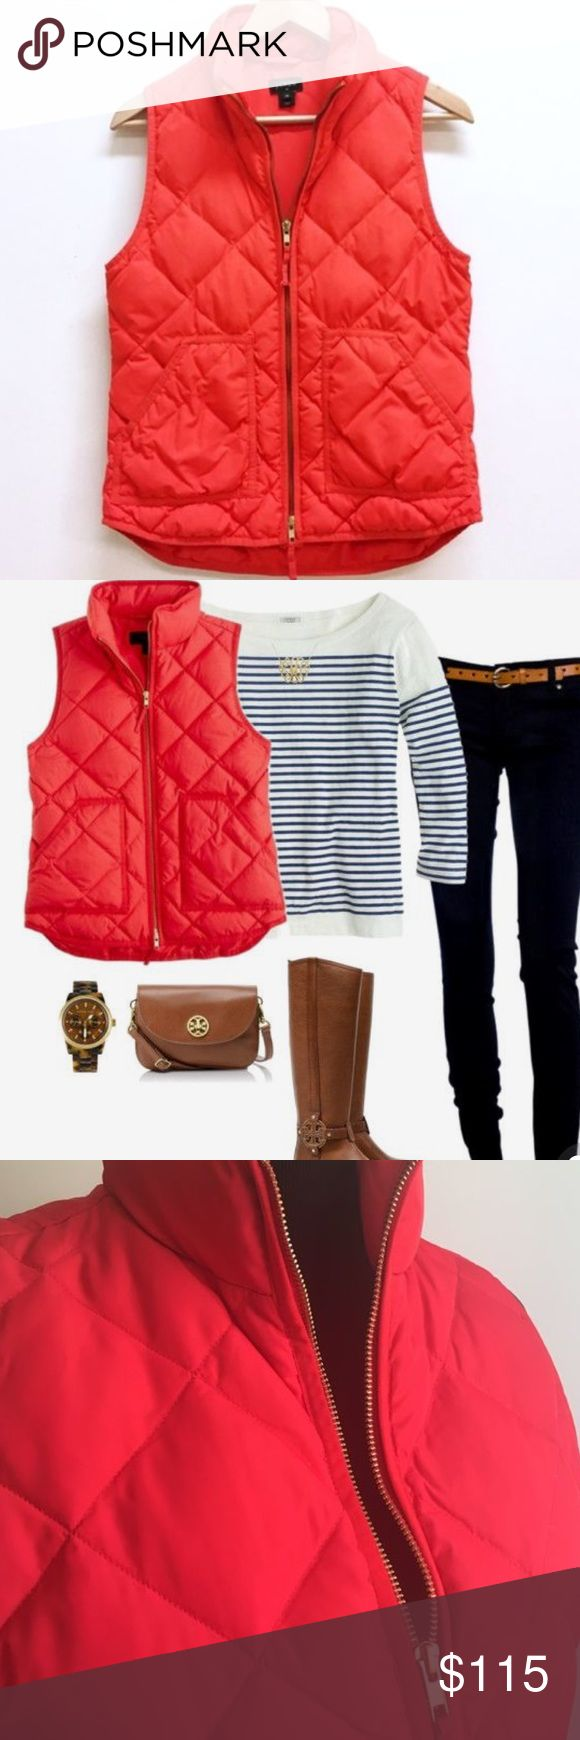 J Crew Red Puffer Vest Great condition! Beautiful color! J. Crew Jackets & Coats Vests